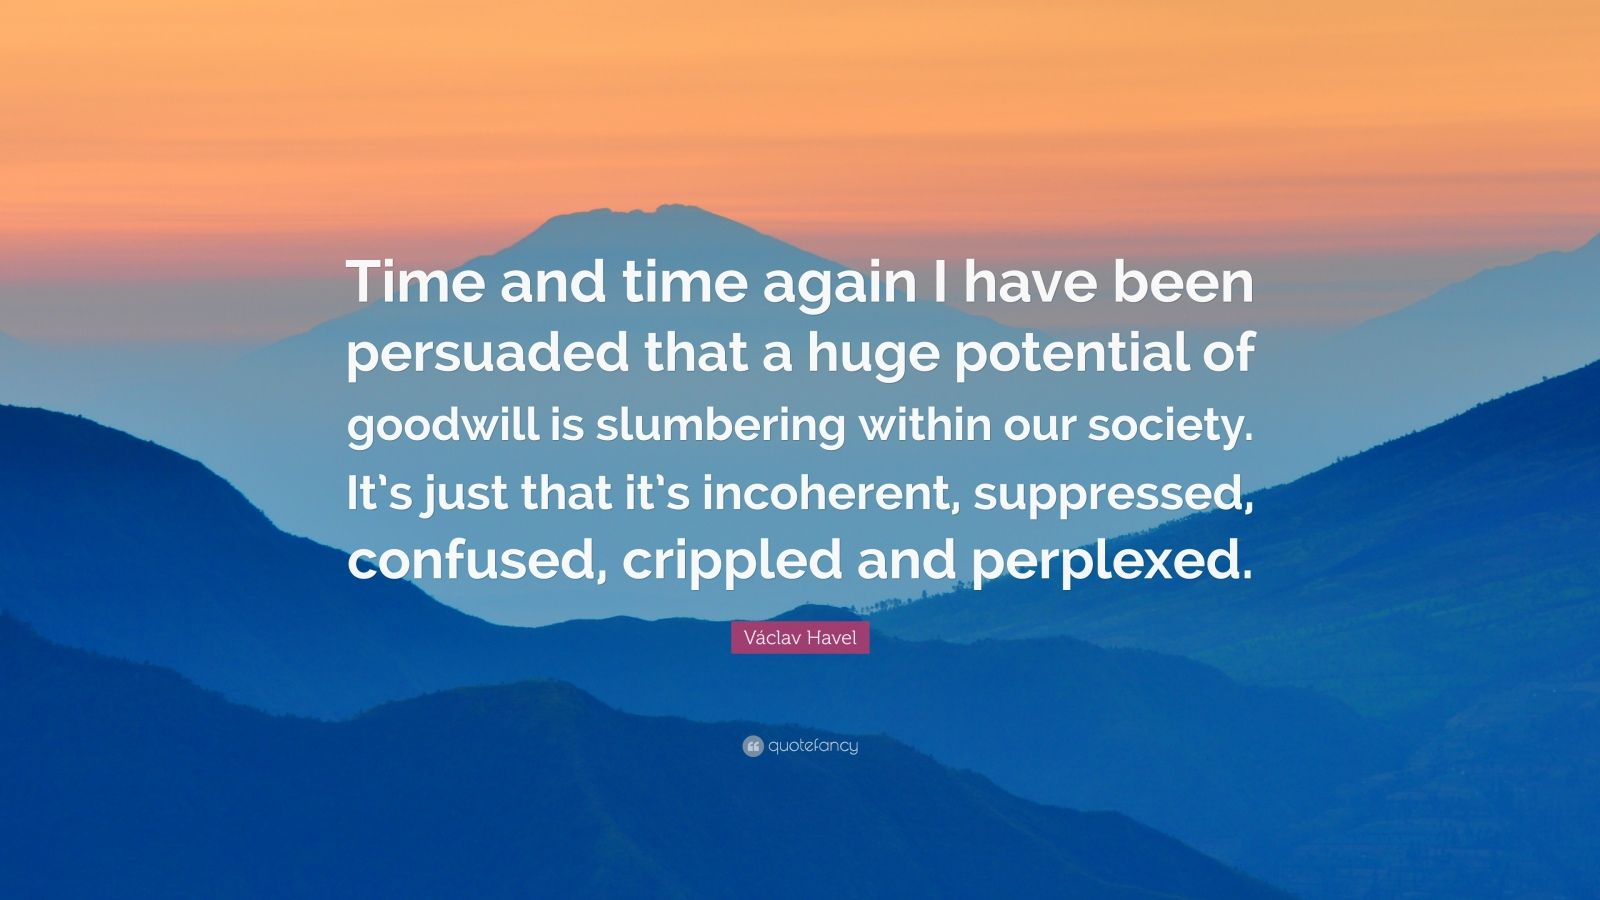 """Václav Havel Quote: """"Time and time again I have been persuaded that a huge potential of goodwill is slumbering within our society. It's just that it's incoherent, suppressed, confused, crippled and perplexed."""""""